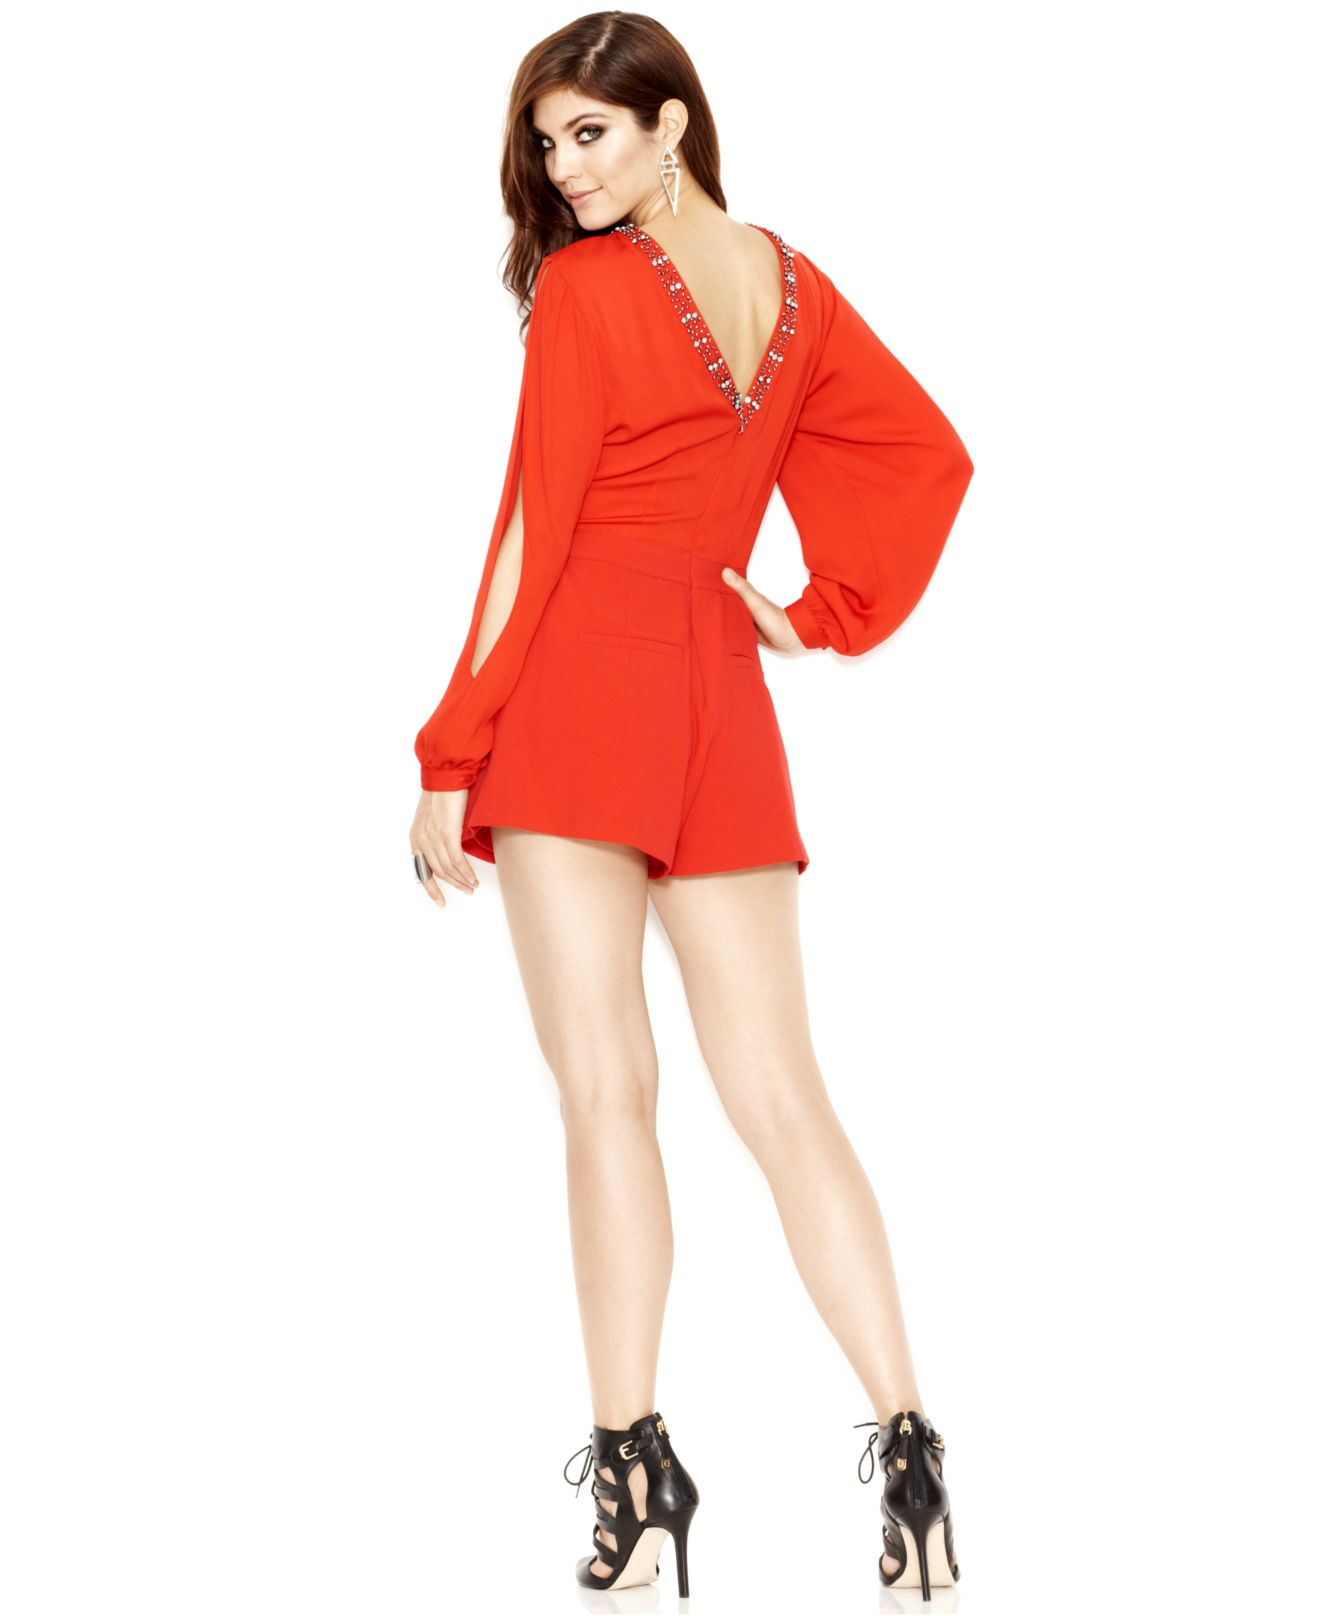 0cfd82a7a79f Lyst - Guess Long-Sleeve Embellished V-Back Romper in Red